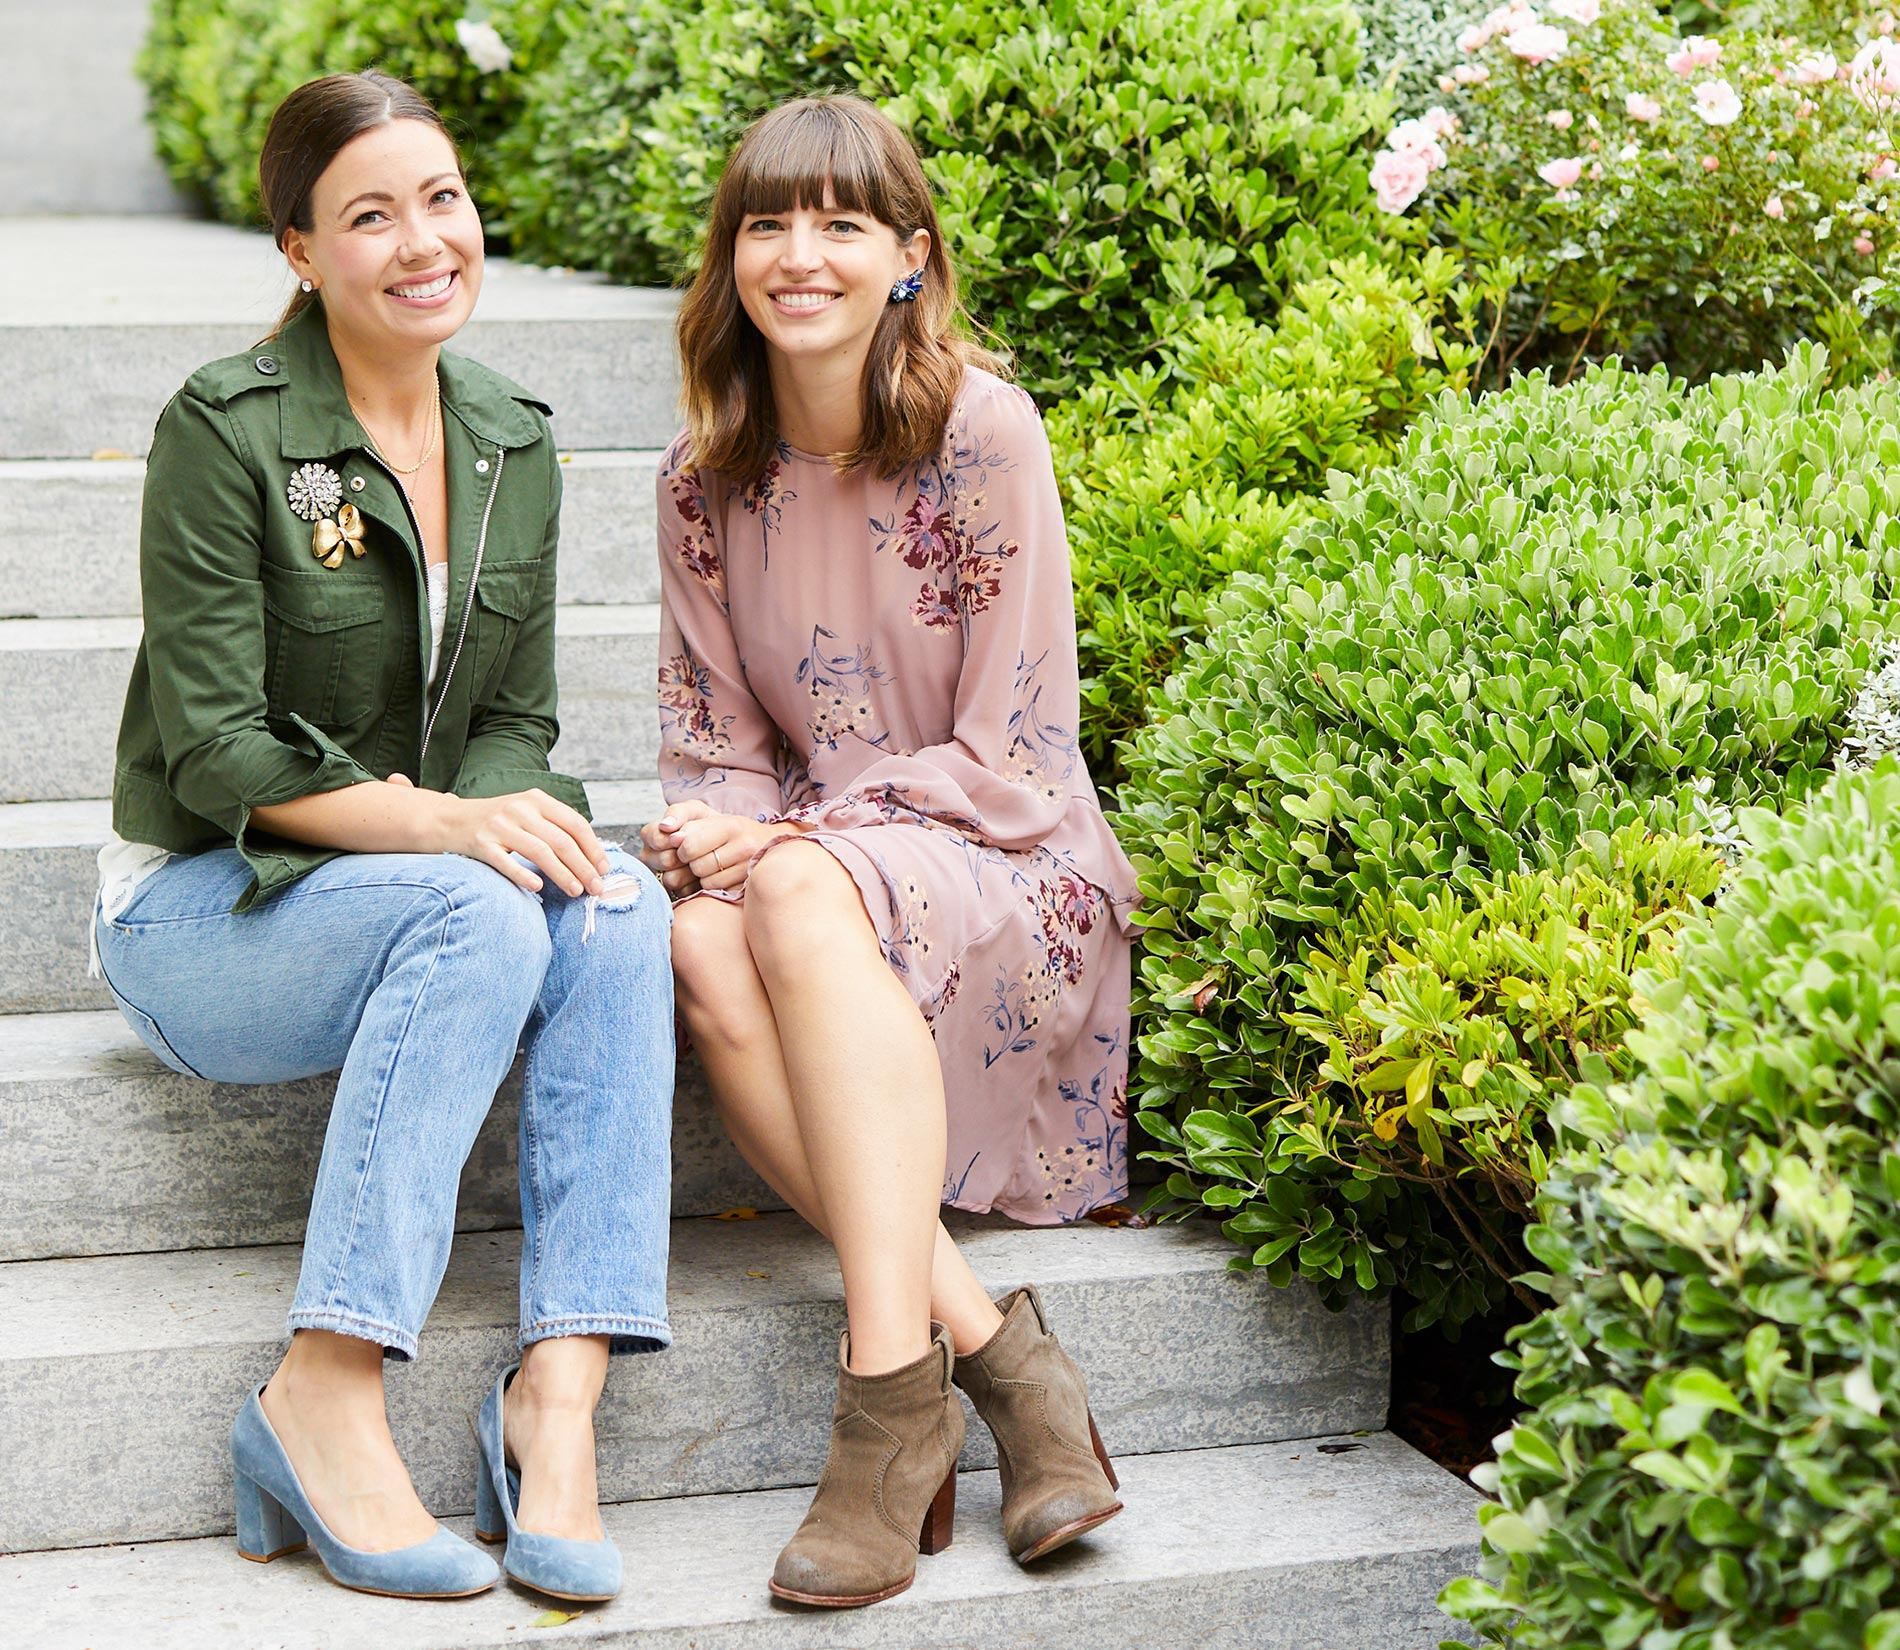 Meet Jillian & Emilee, the female co-founders of Sweet & Spark.